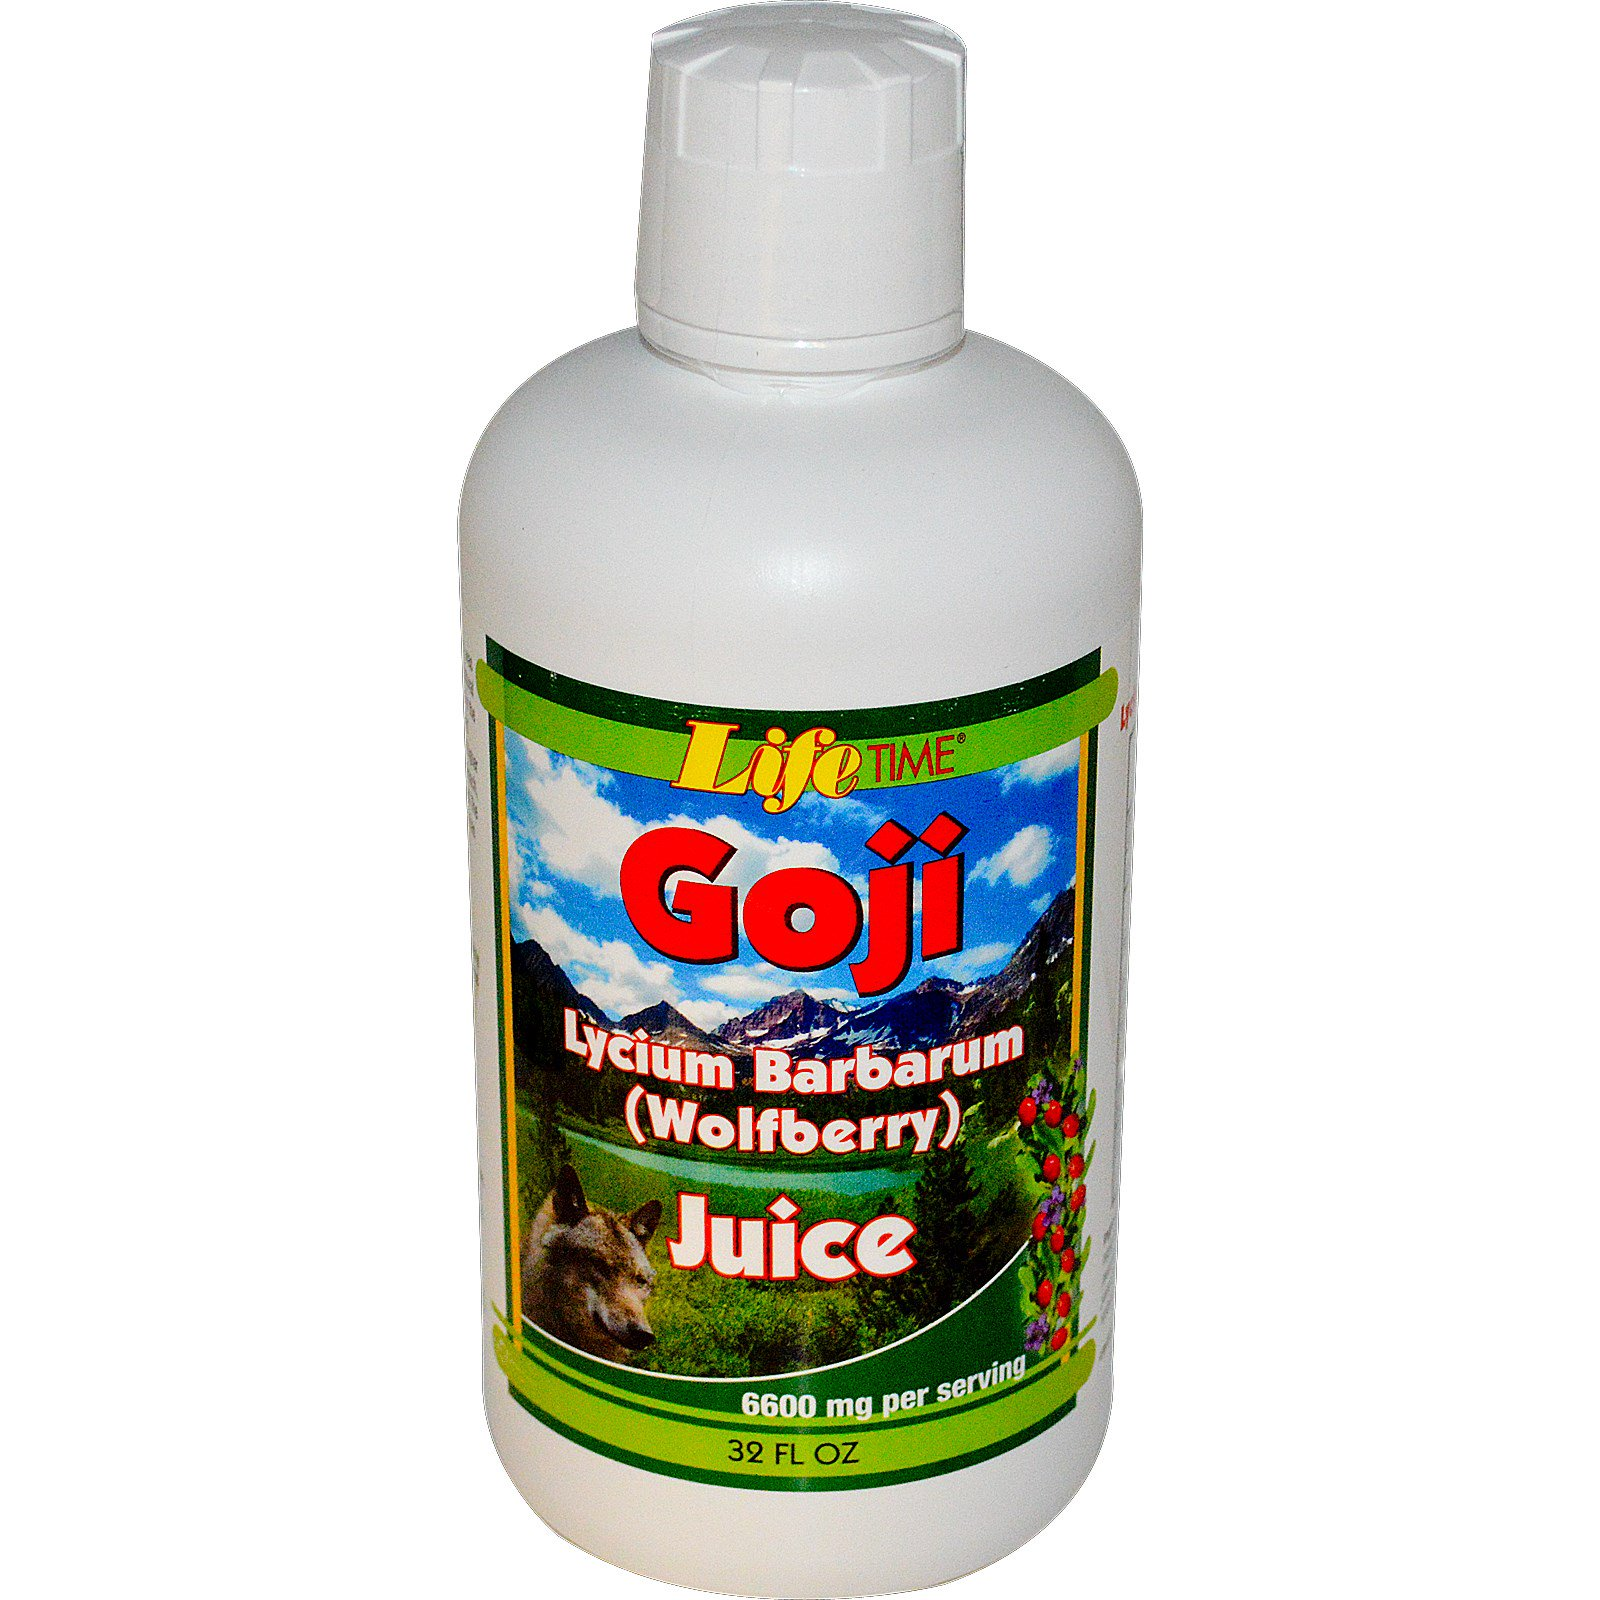 What is goji juice good for